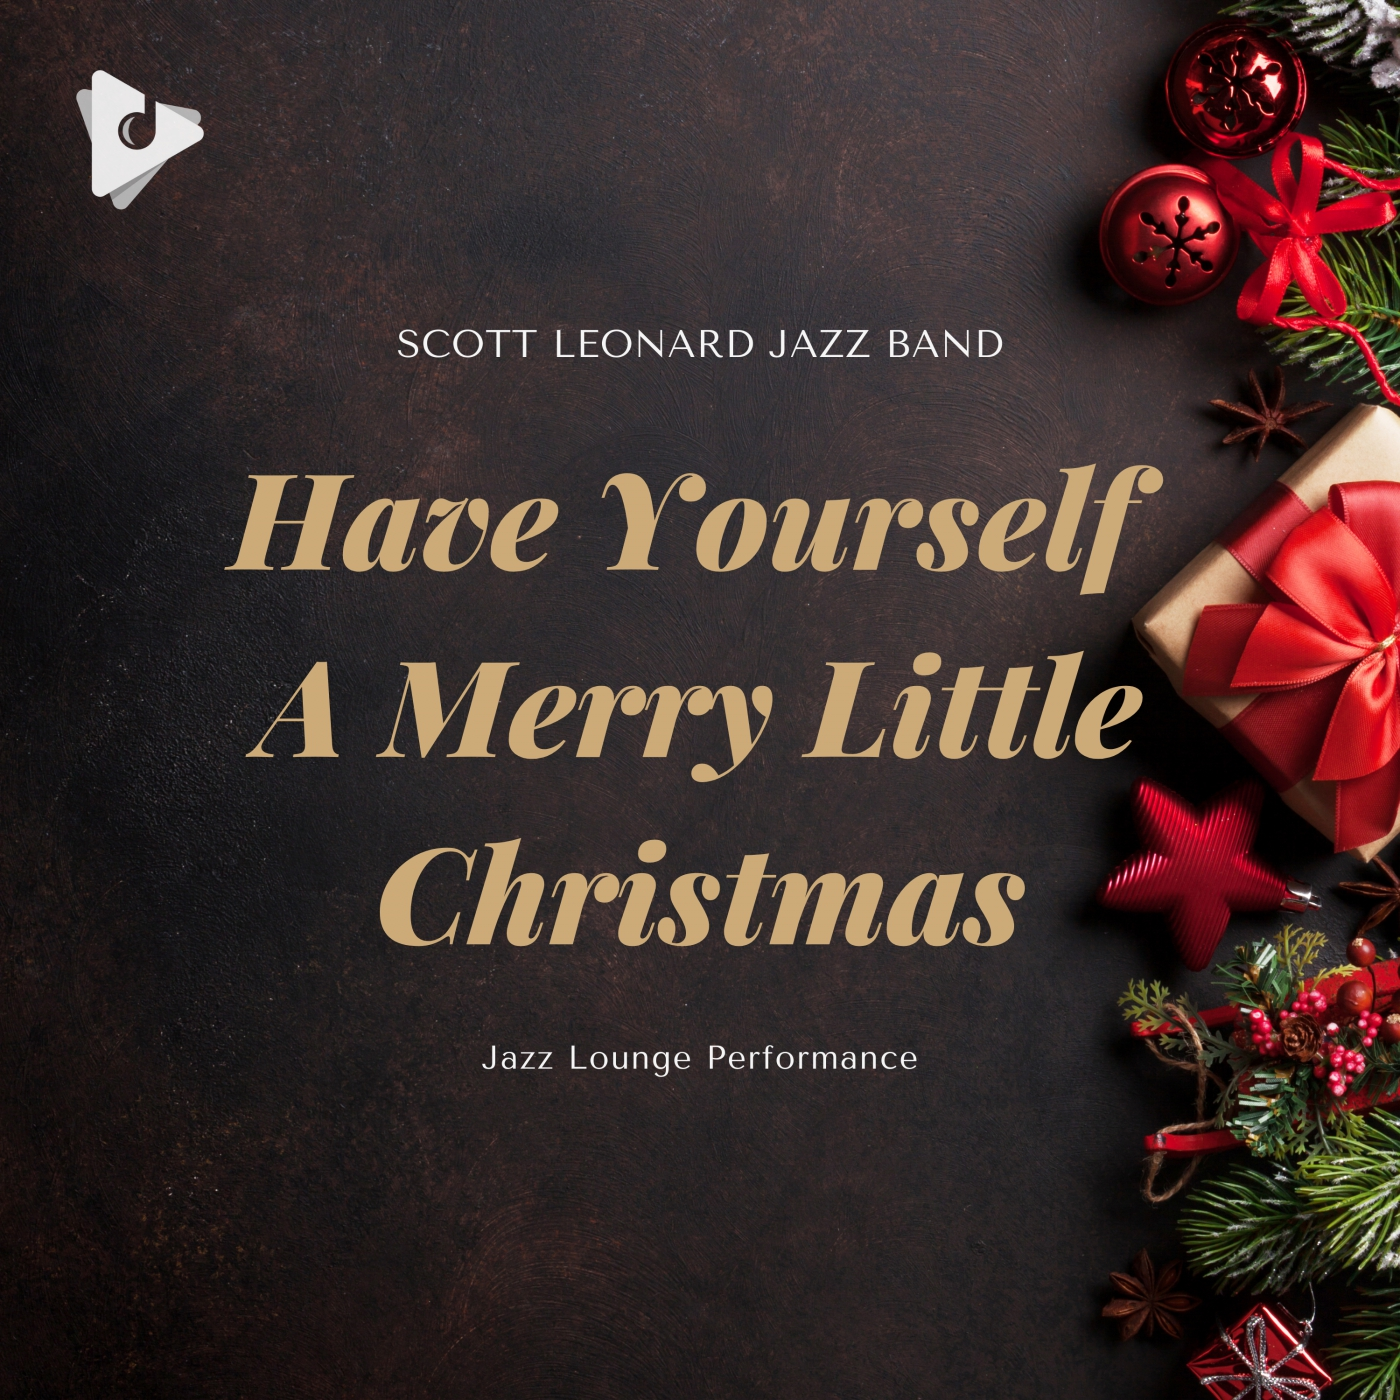 Have Yourself A Merry Little Christmas (Jazz Lounge Performance)